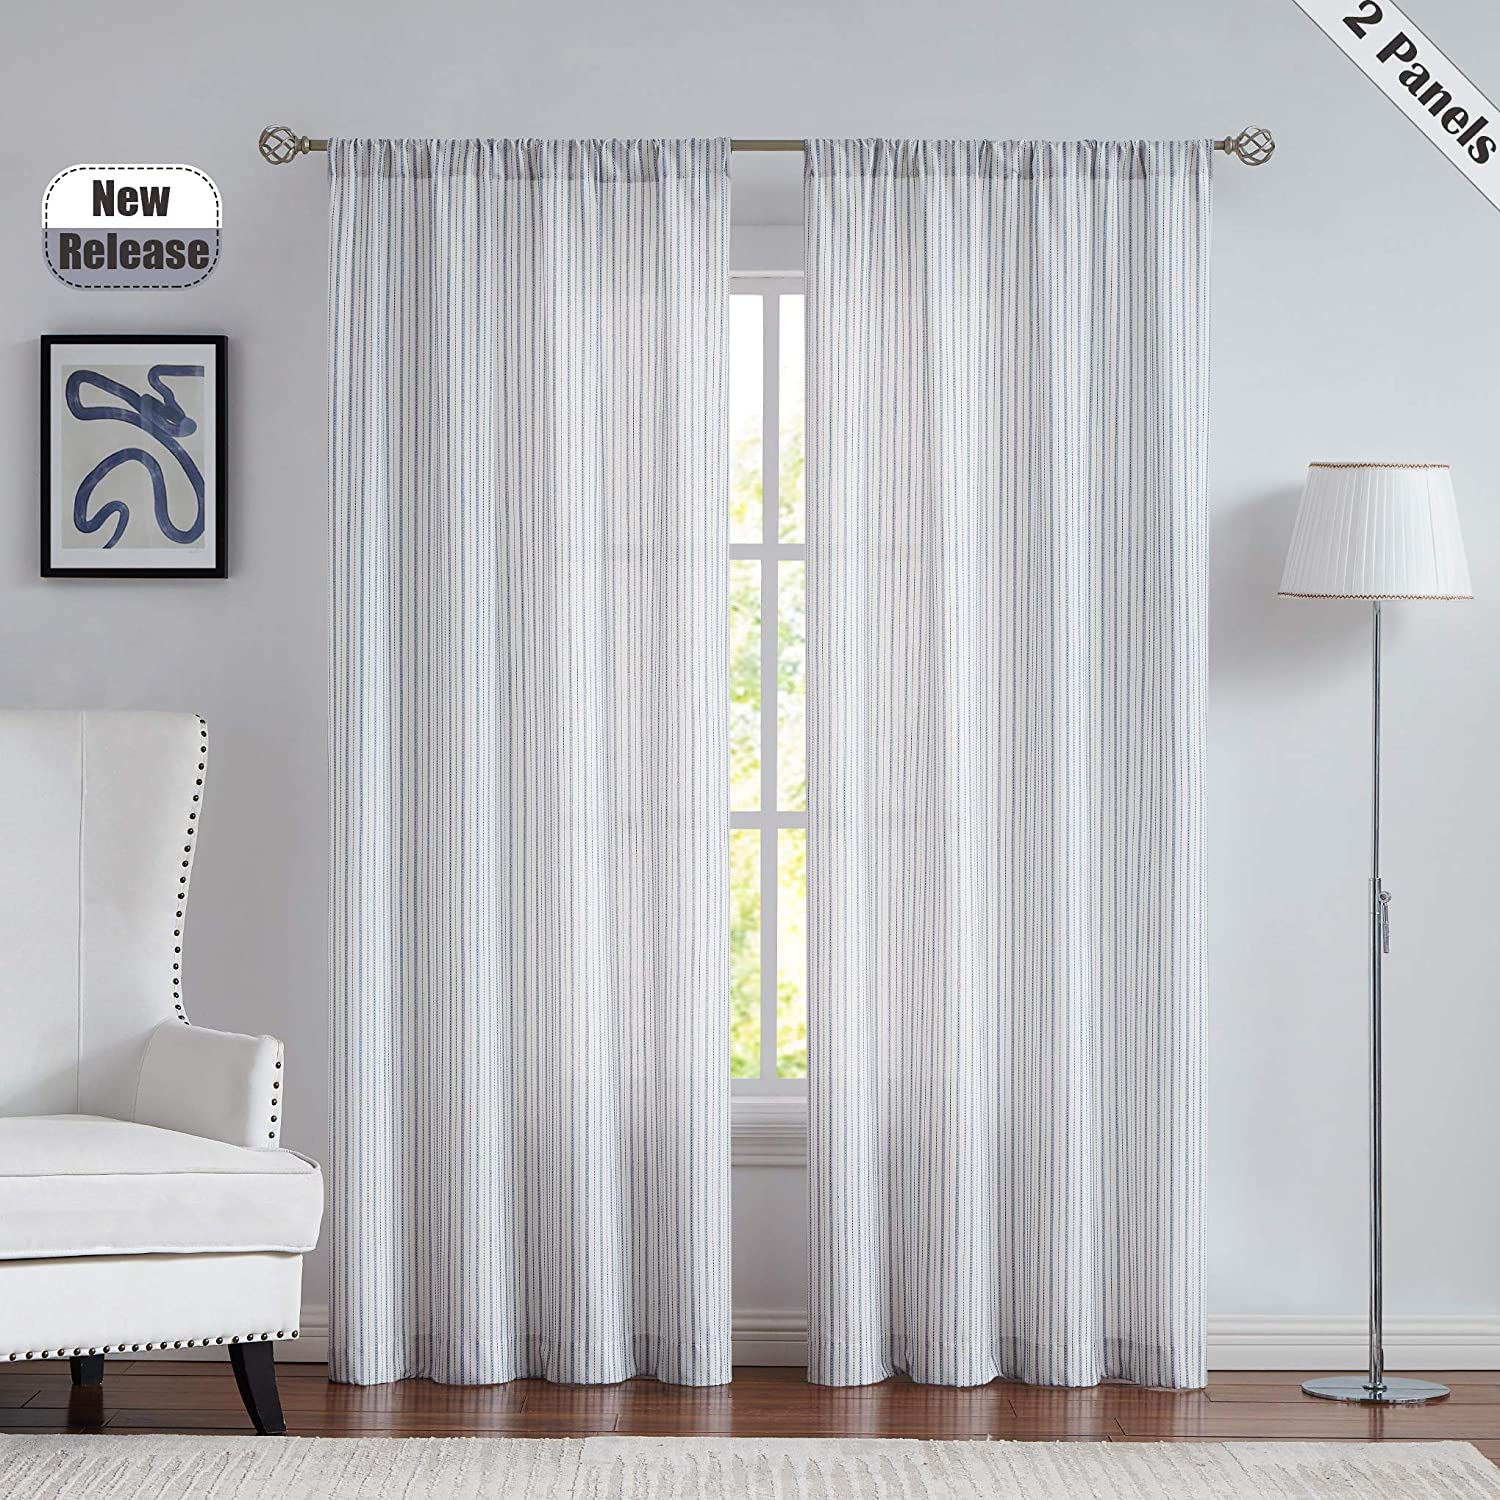 SXZJTEX Striped Cafe Window Curtain Tiers Rustic Semi Sheer Pinstripe Small Window Drapes Rod Pocket for Living Room /& Kitchen White//Black Laudry 27 x 24 Patio